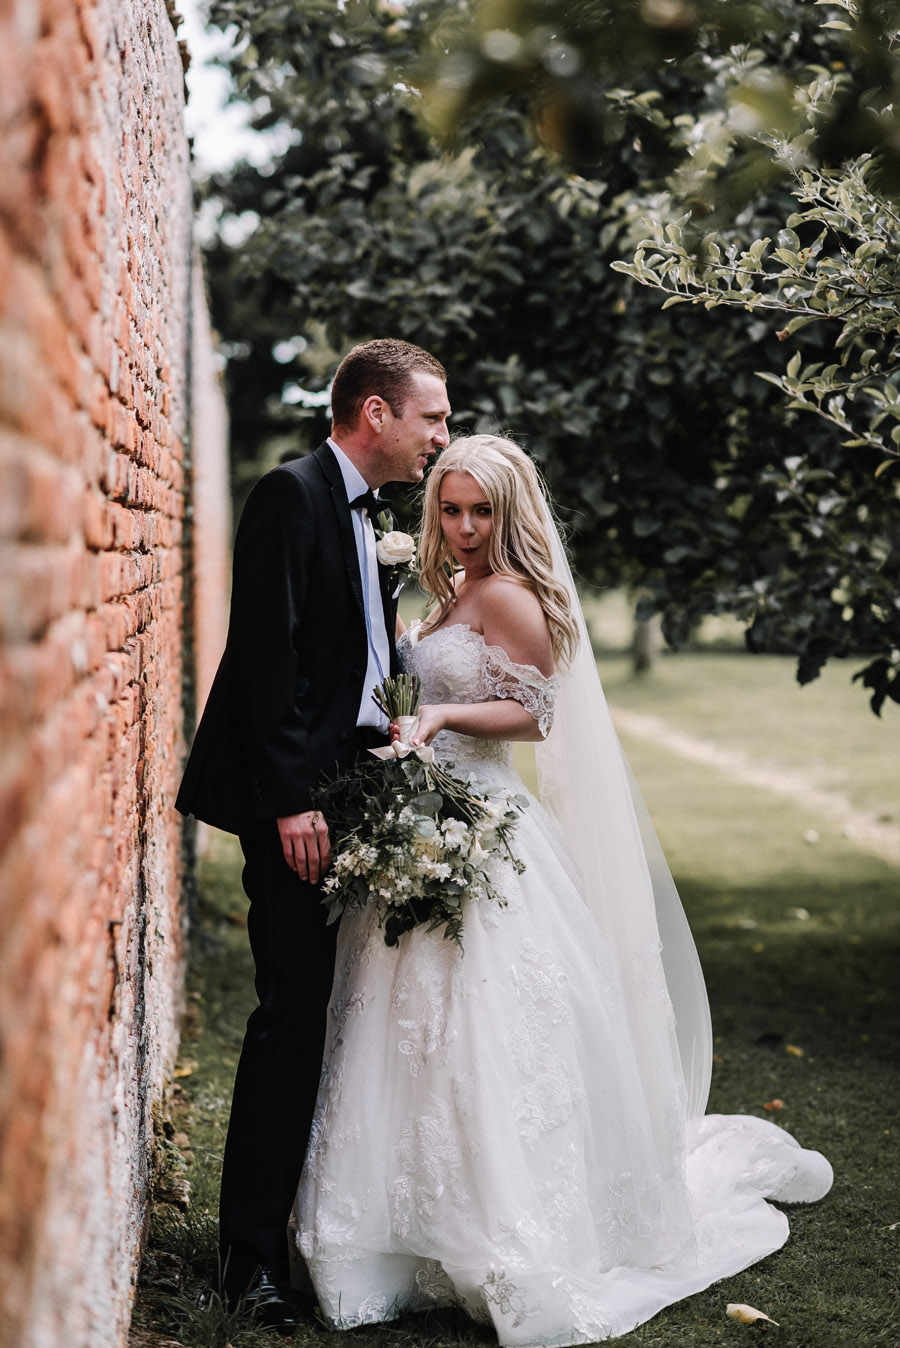 Whimsical wedding at Birtsmorton Court with beautiful photography by Oobaloos (35)